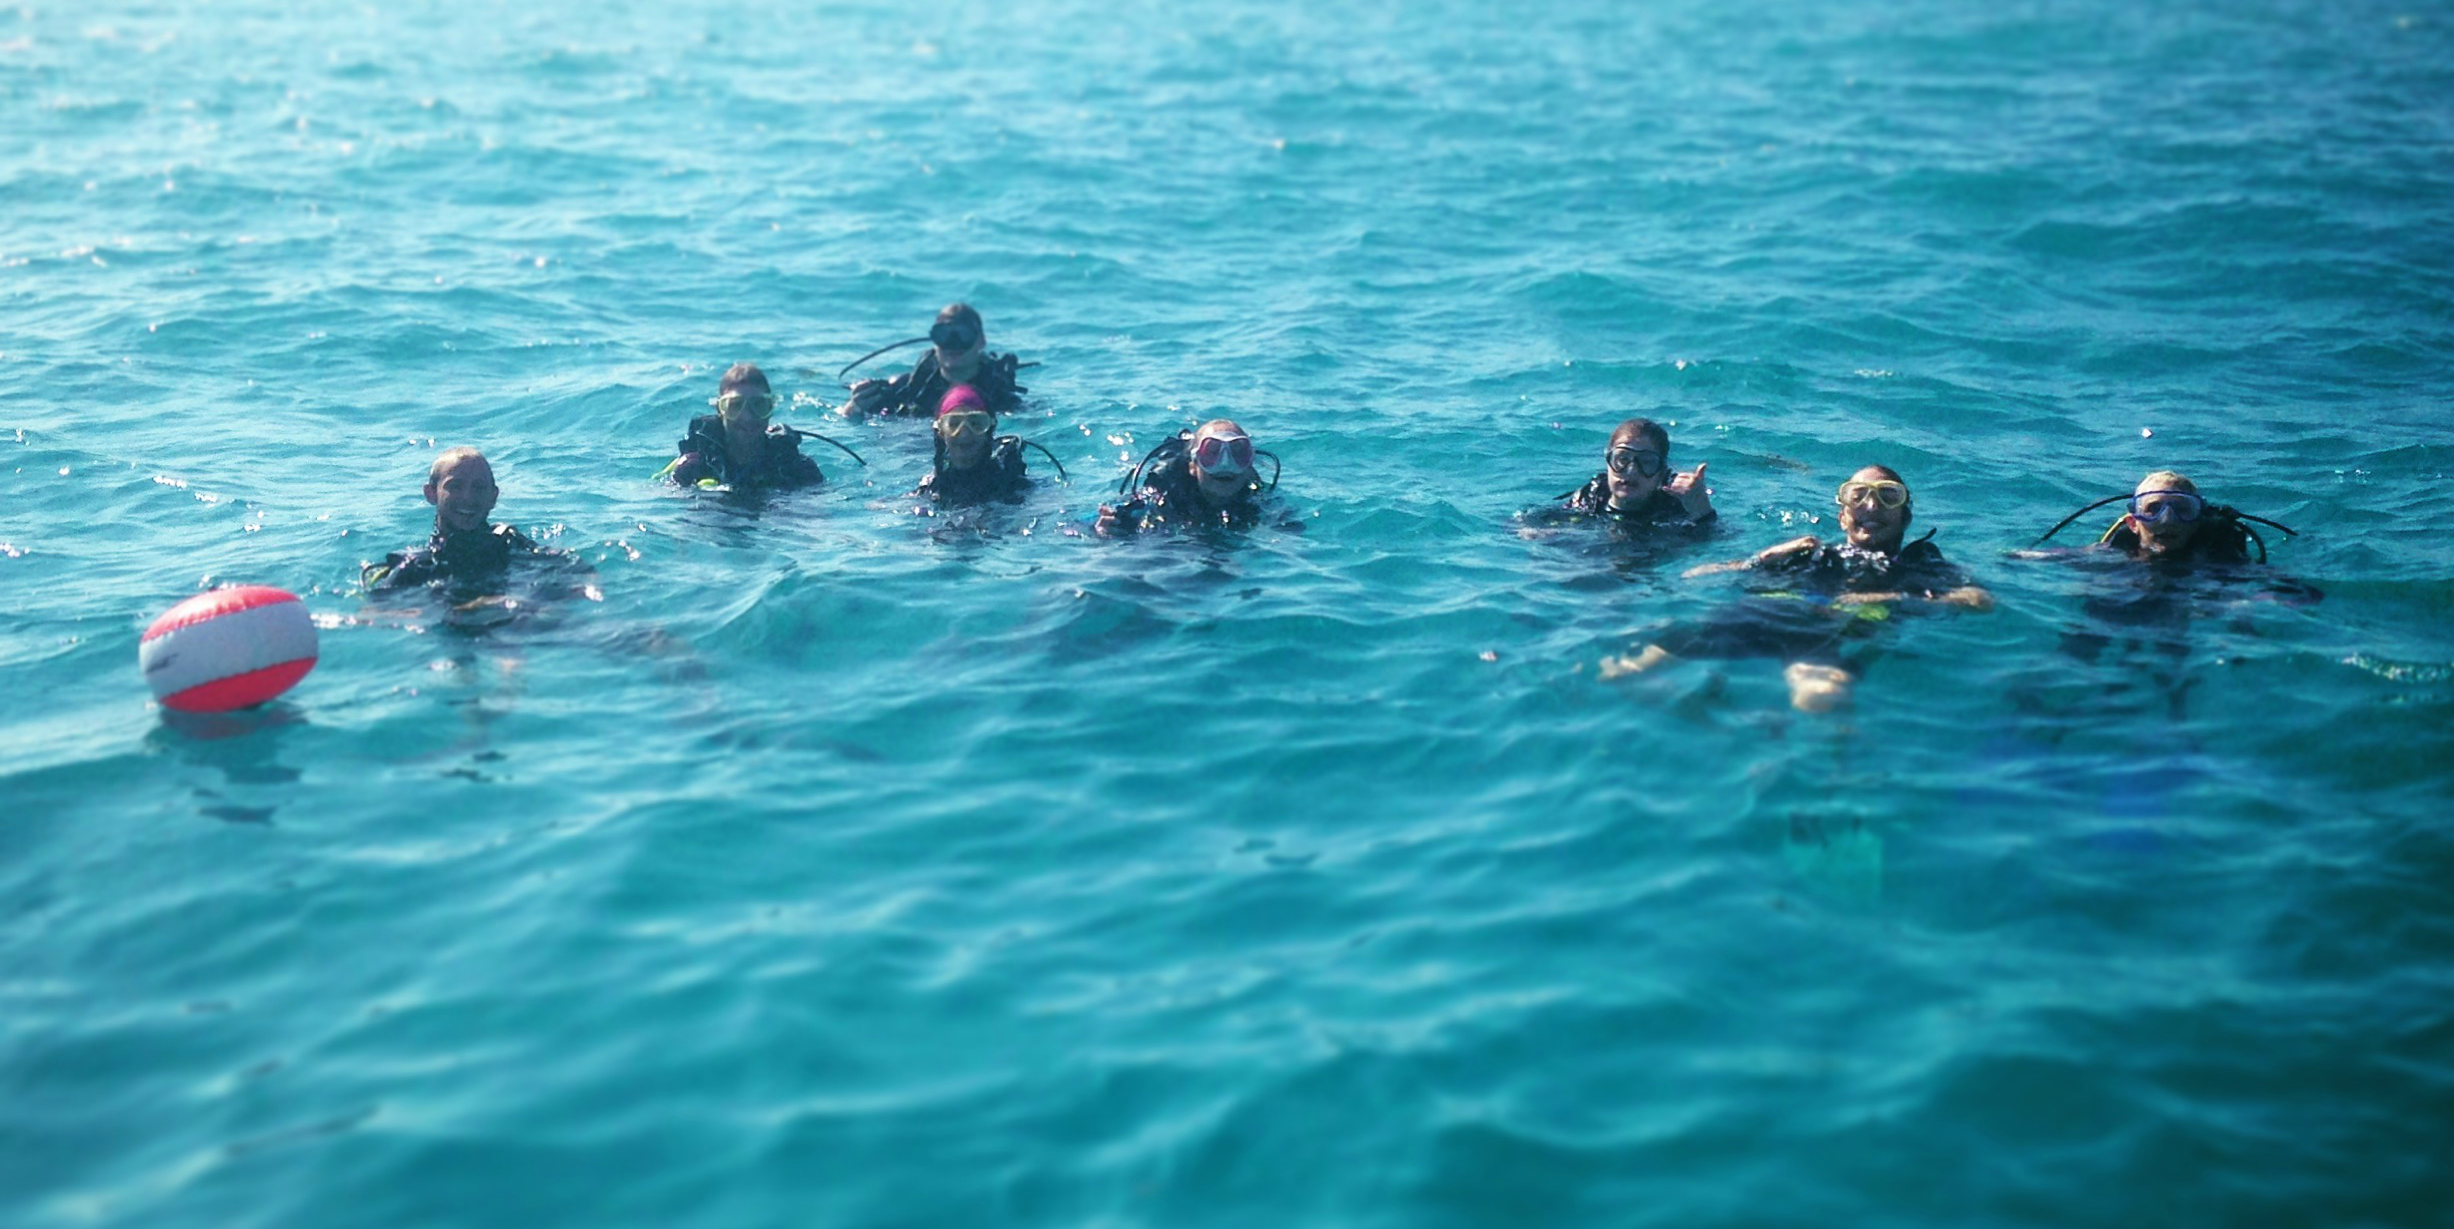 GVI's PADI certified participants explore the famed coral reefs in Mahe, Seychelles, while contributing to vital coral reef research.